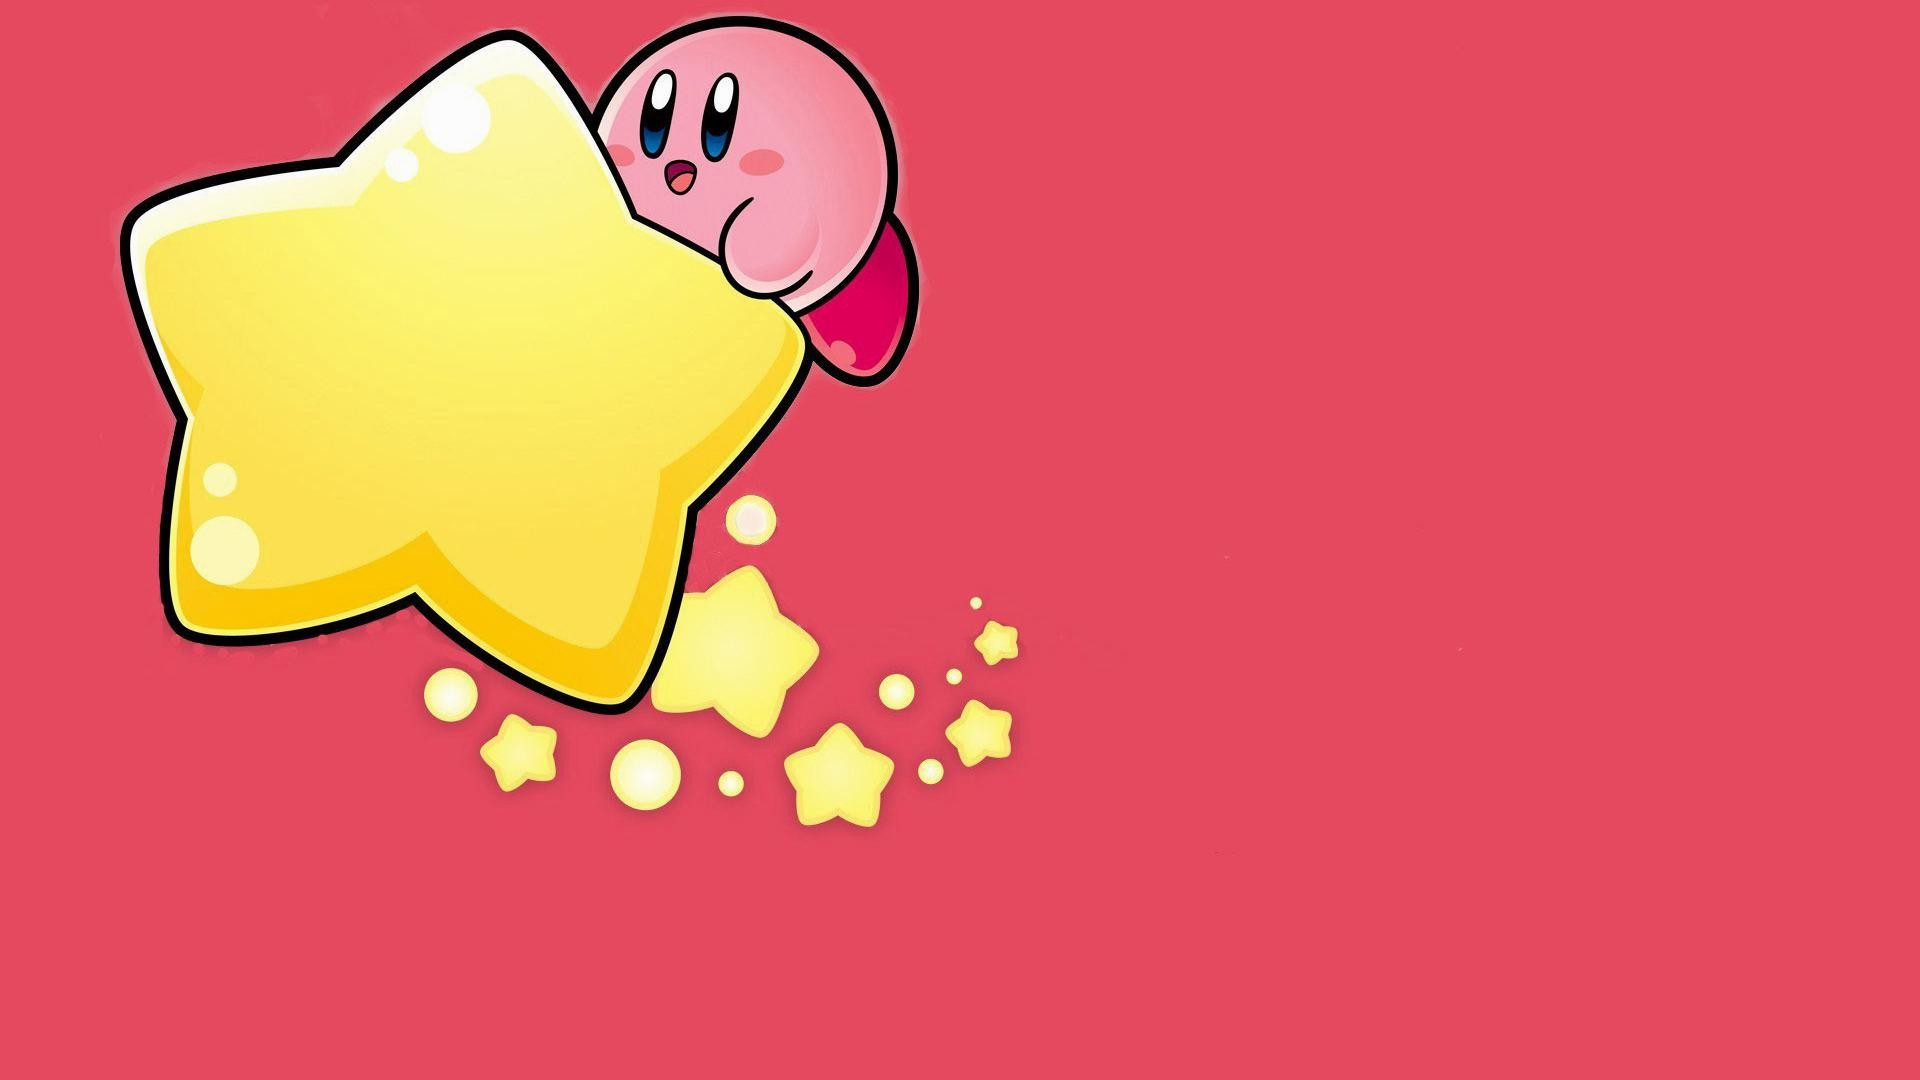 Free-HD-Kirby-Wallpapers-Download